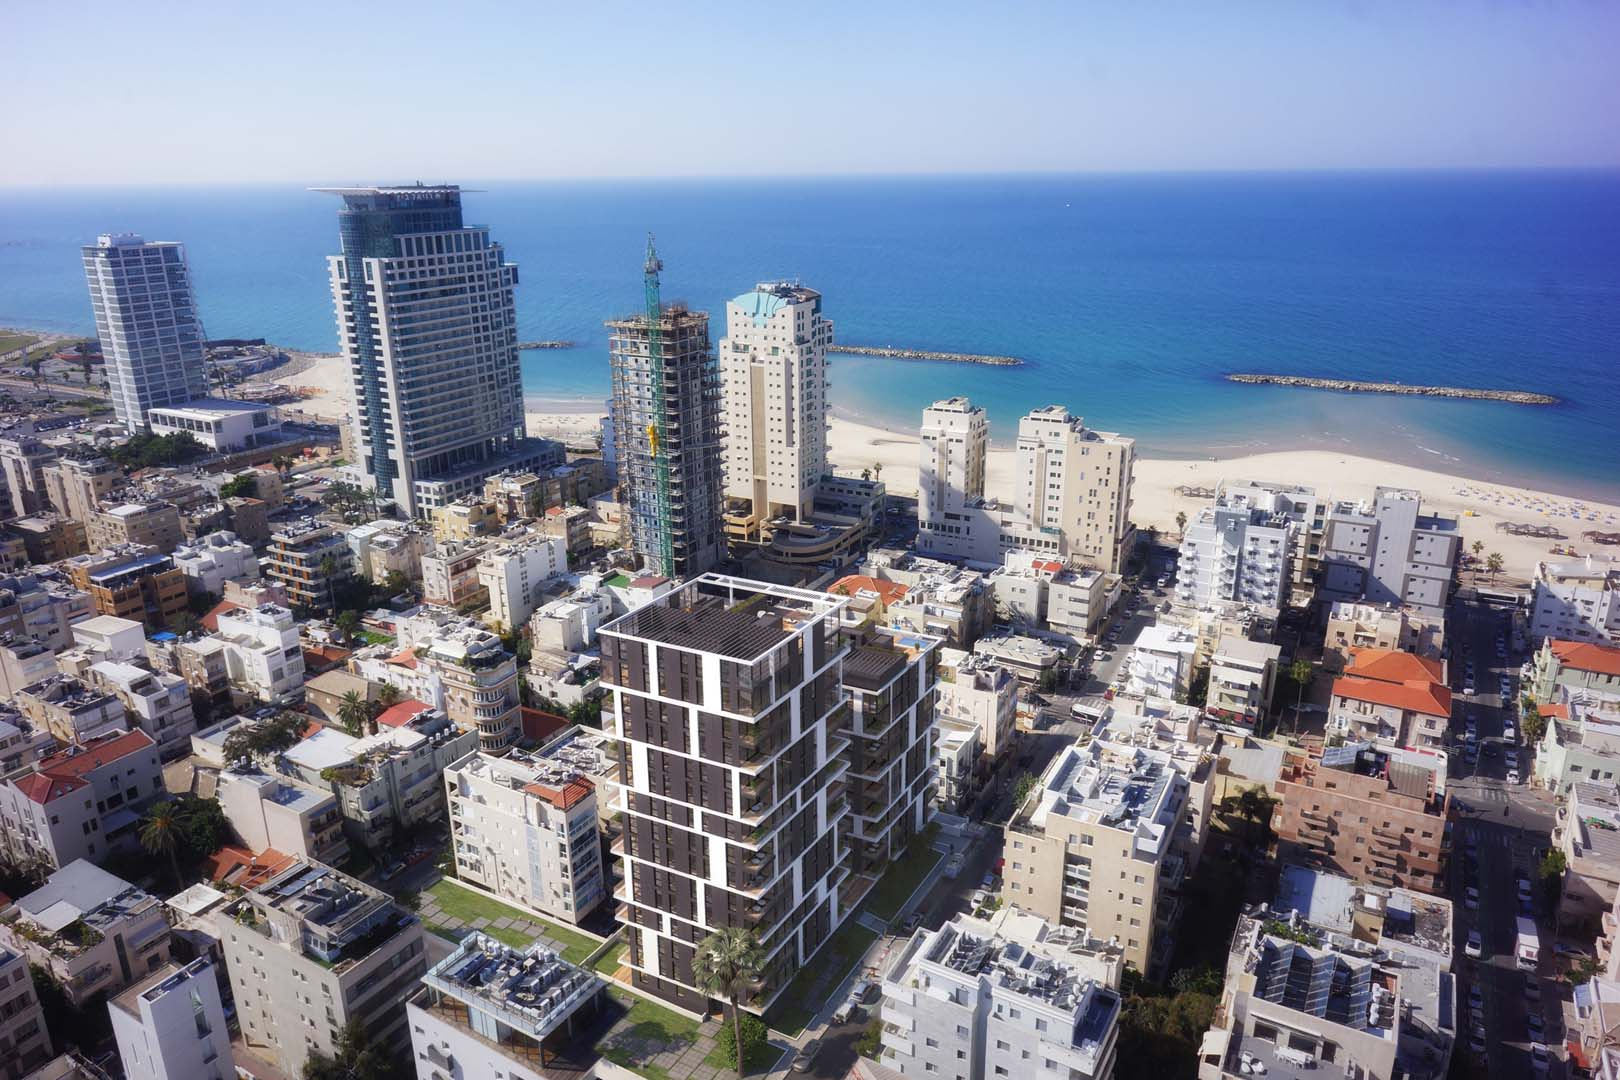 'Apartments / Flats' building or community at 'Serene Sea View Apartments in a New Project Living by the Sea Tel Aviv, Israel 6380810 Israel'